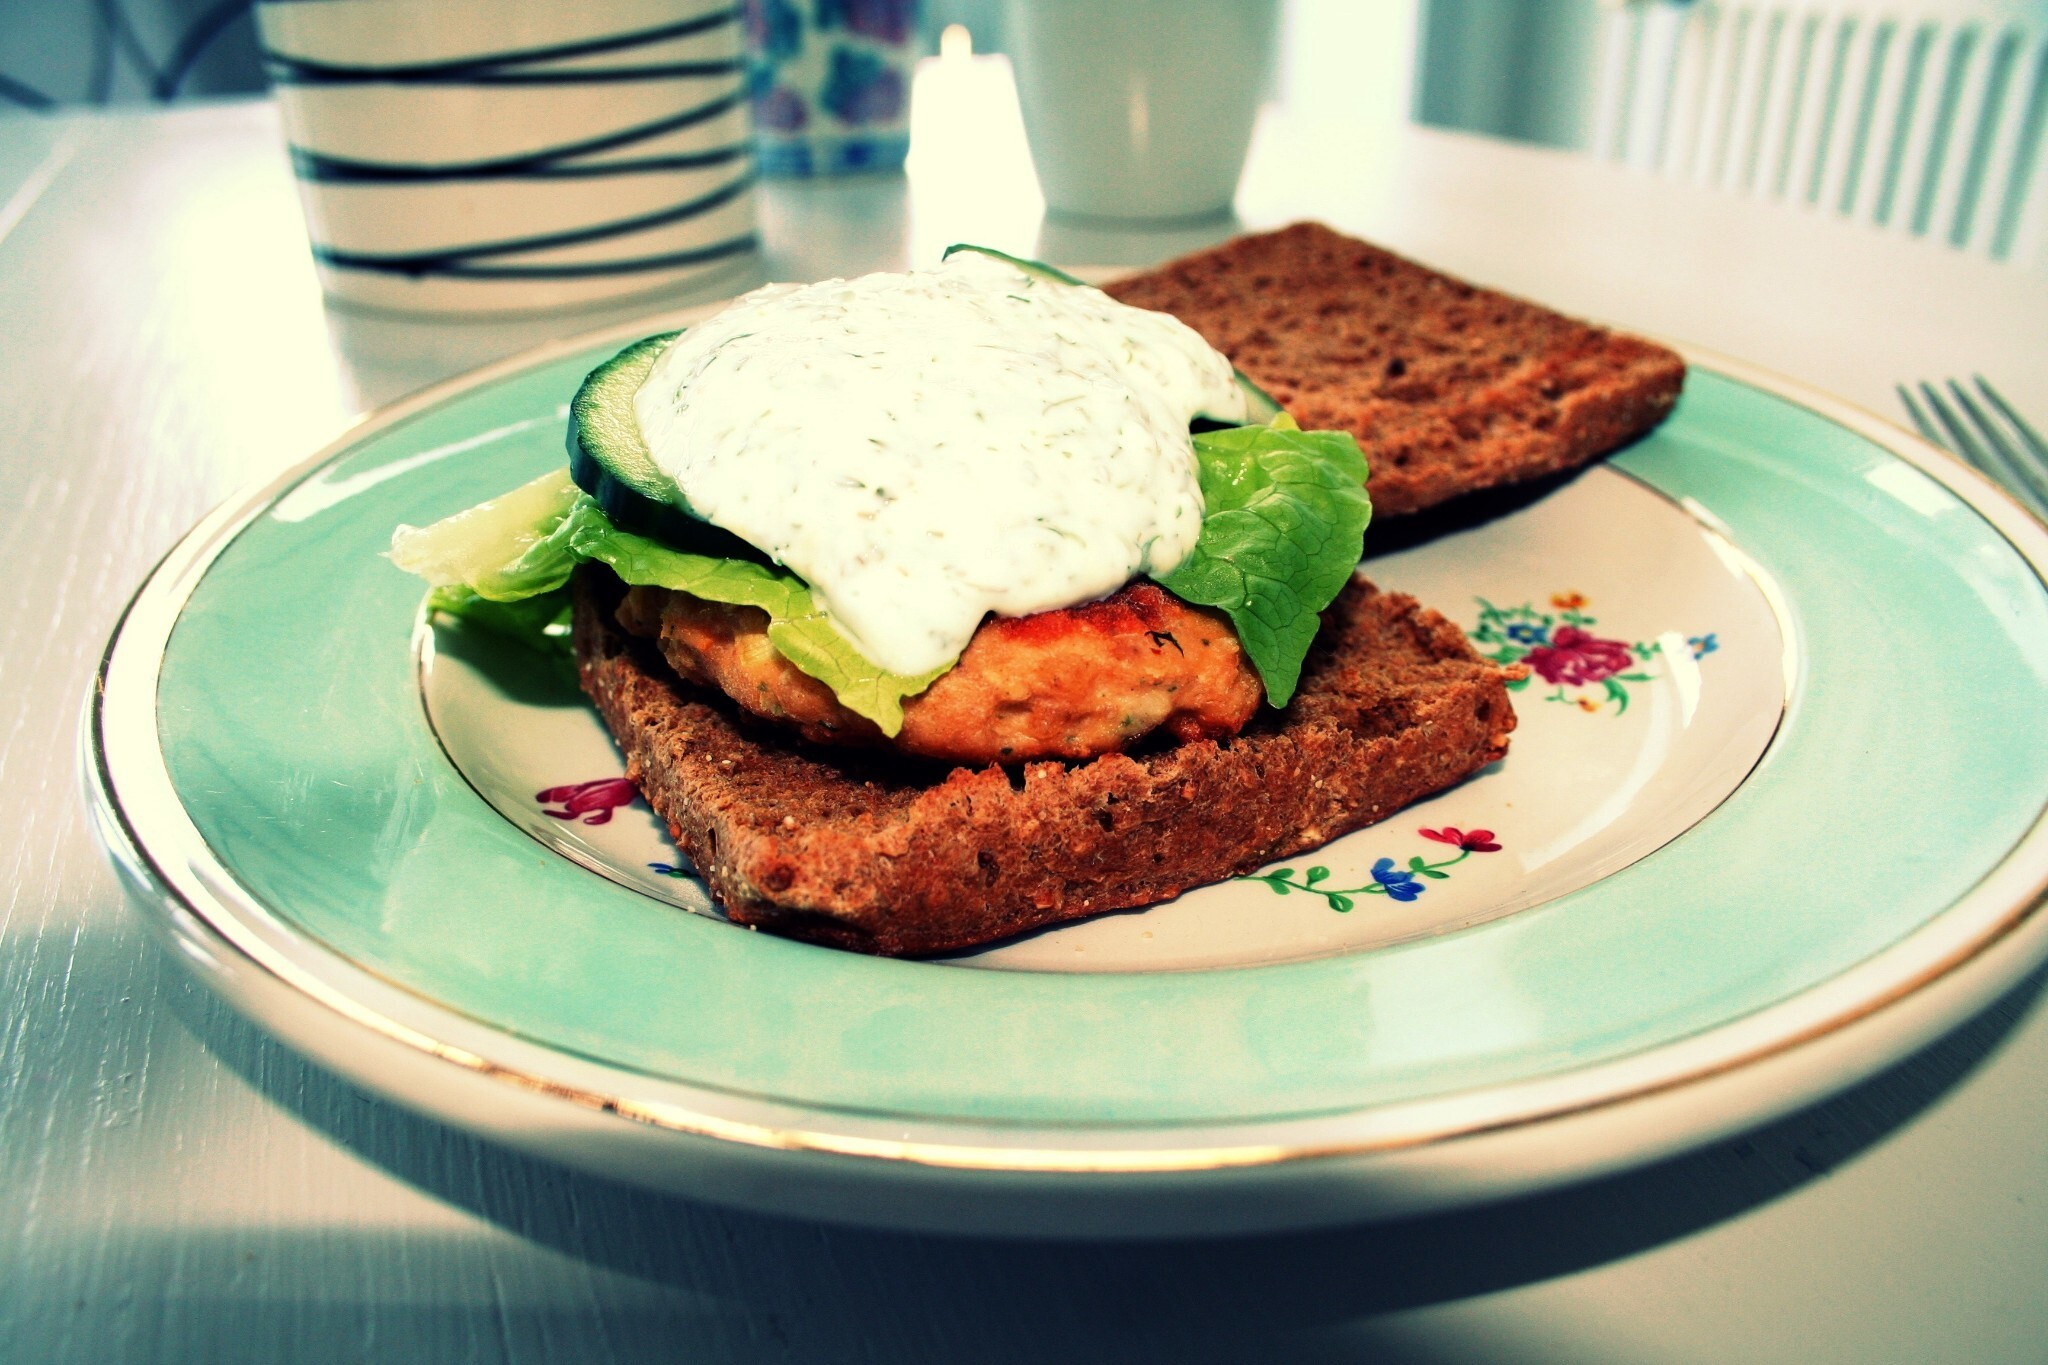 Salmon steak (burgers)